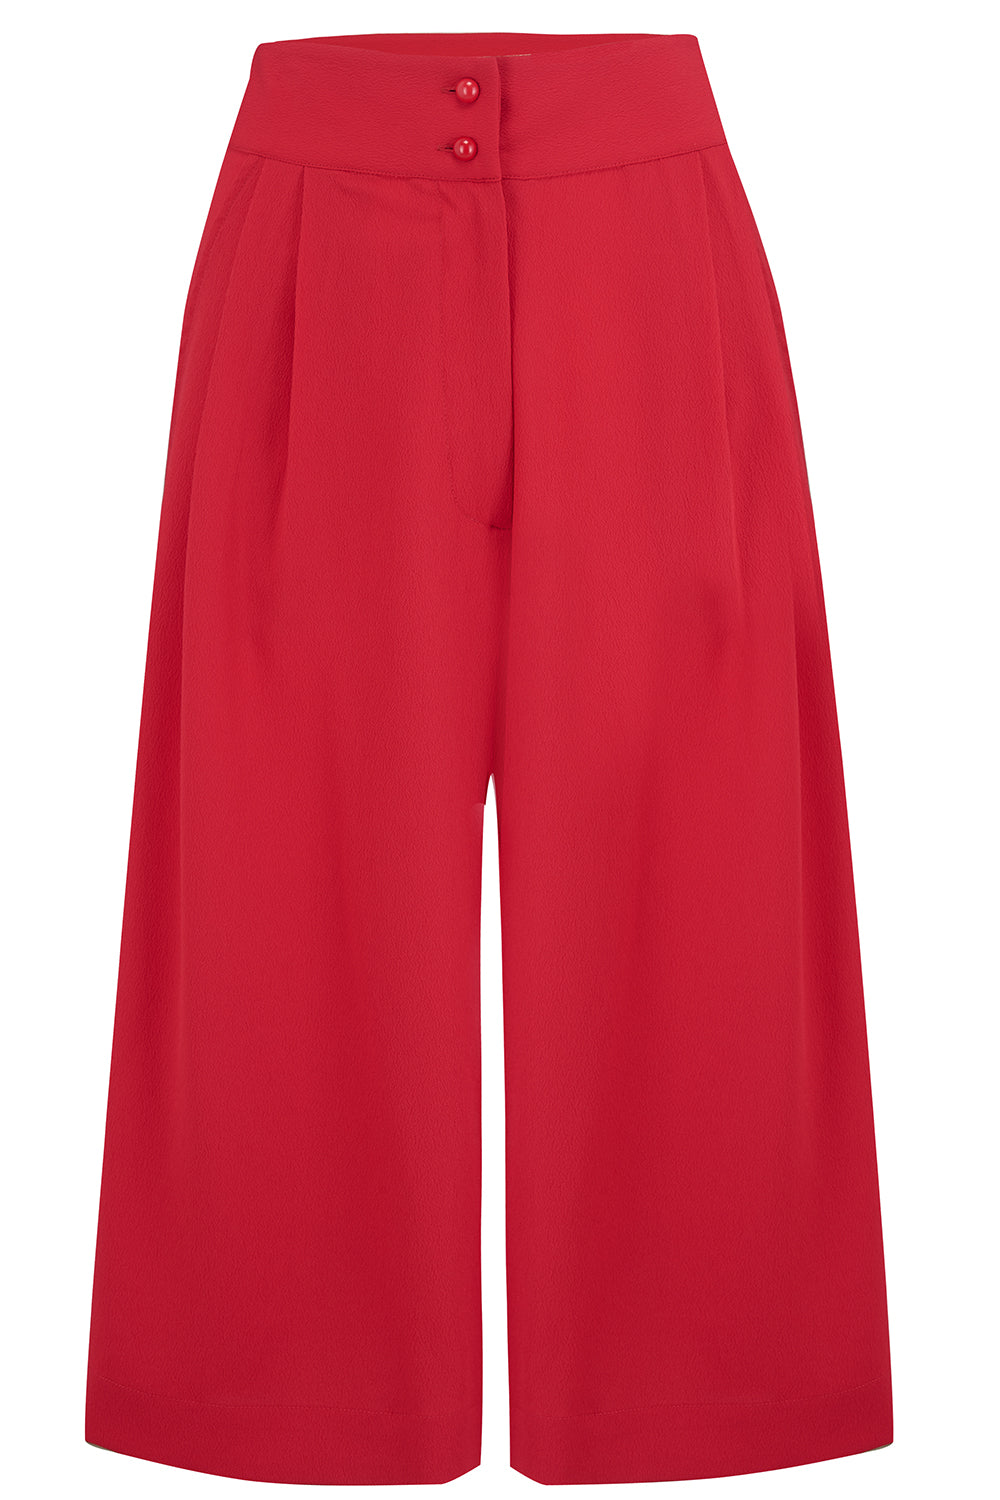 Vintage Shorts, Culottes,  Capris History The Sophia Plazzo Culottes in Solid Red Classic  Easy To Wear Vintage Inspired Style £35.00 AT vintagedancer.com